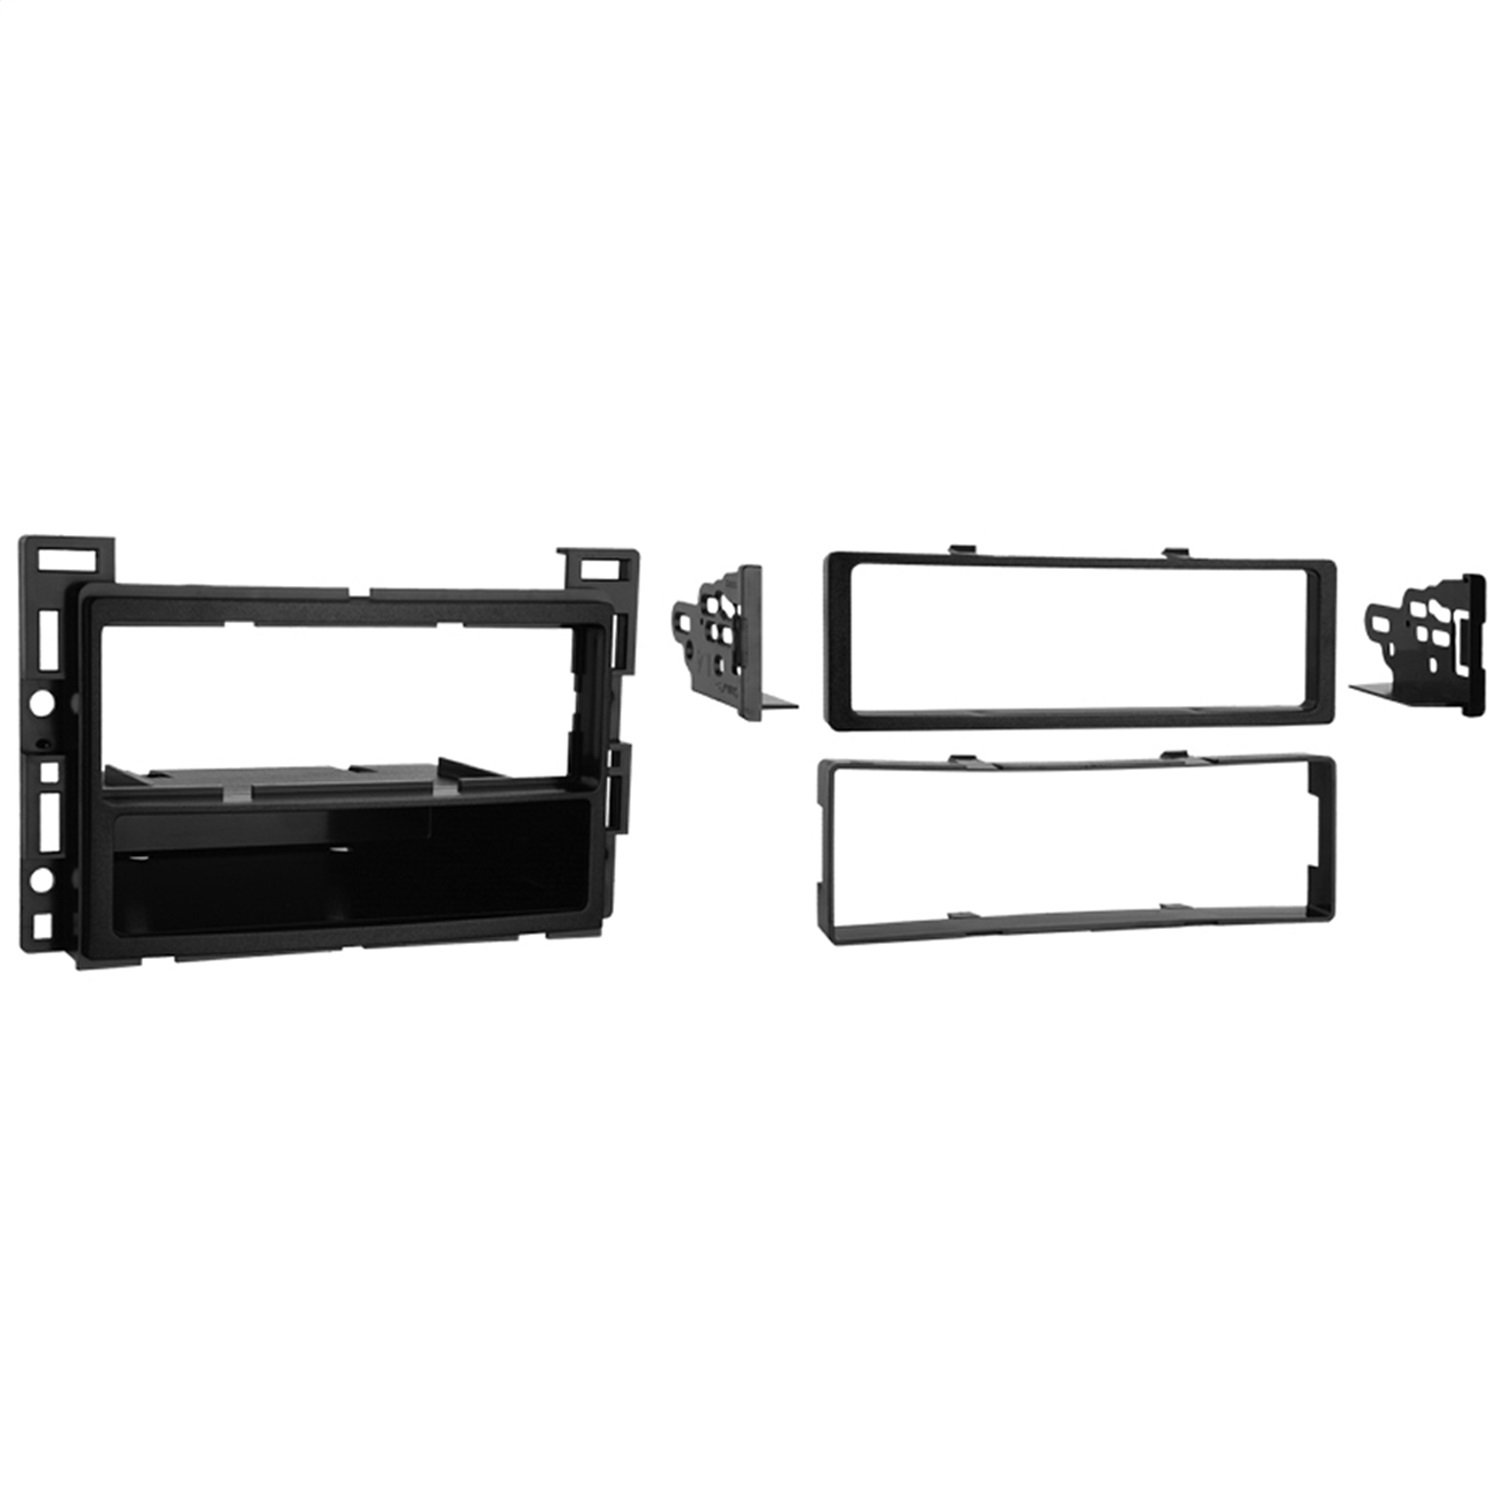 Black Metra 99-3302 Installation Multi-Kit for Select 2004-up GM//Chevrolet Vehicles